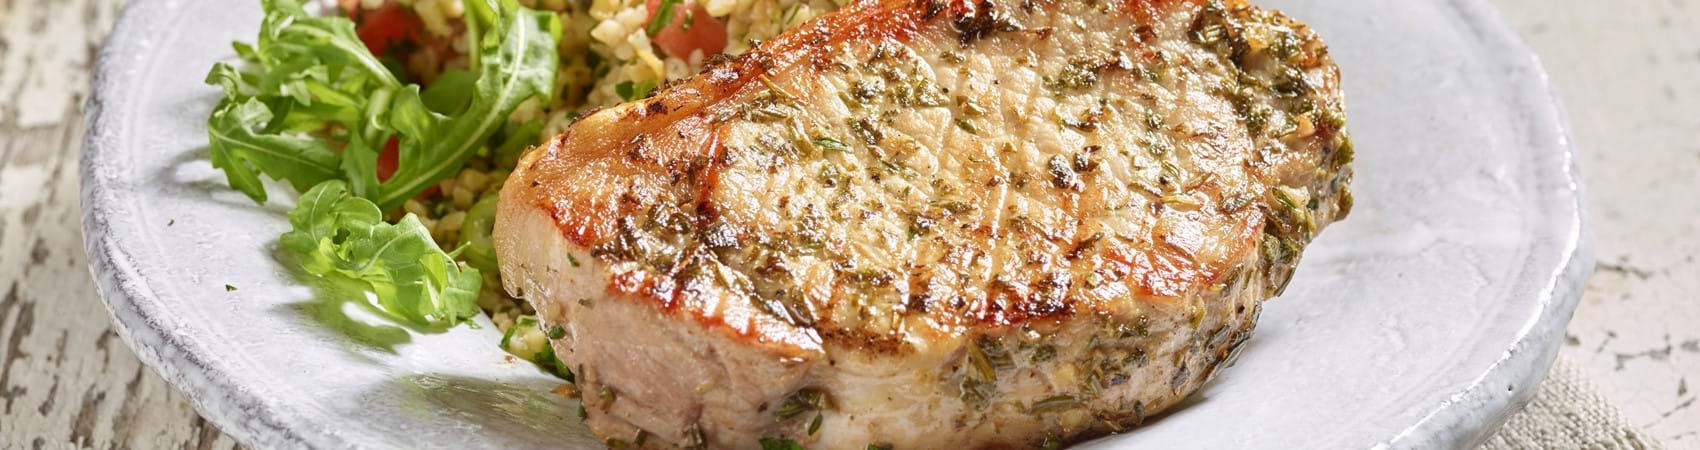 Garlic and Herb Pork Steaks with Tabbouleh